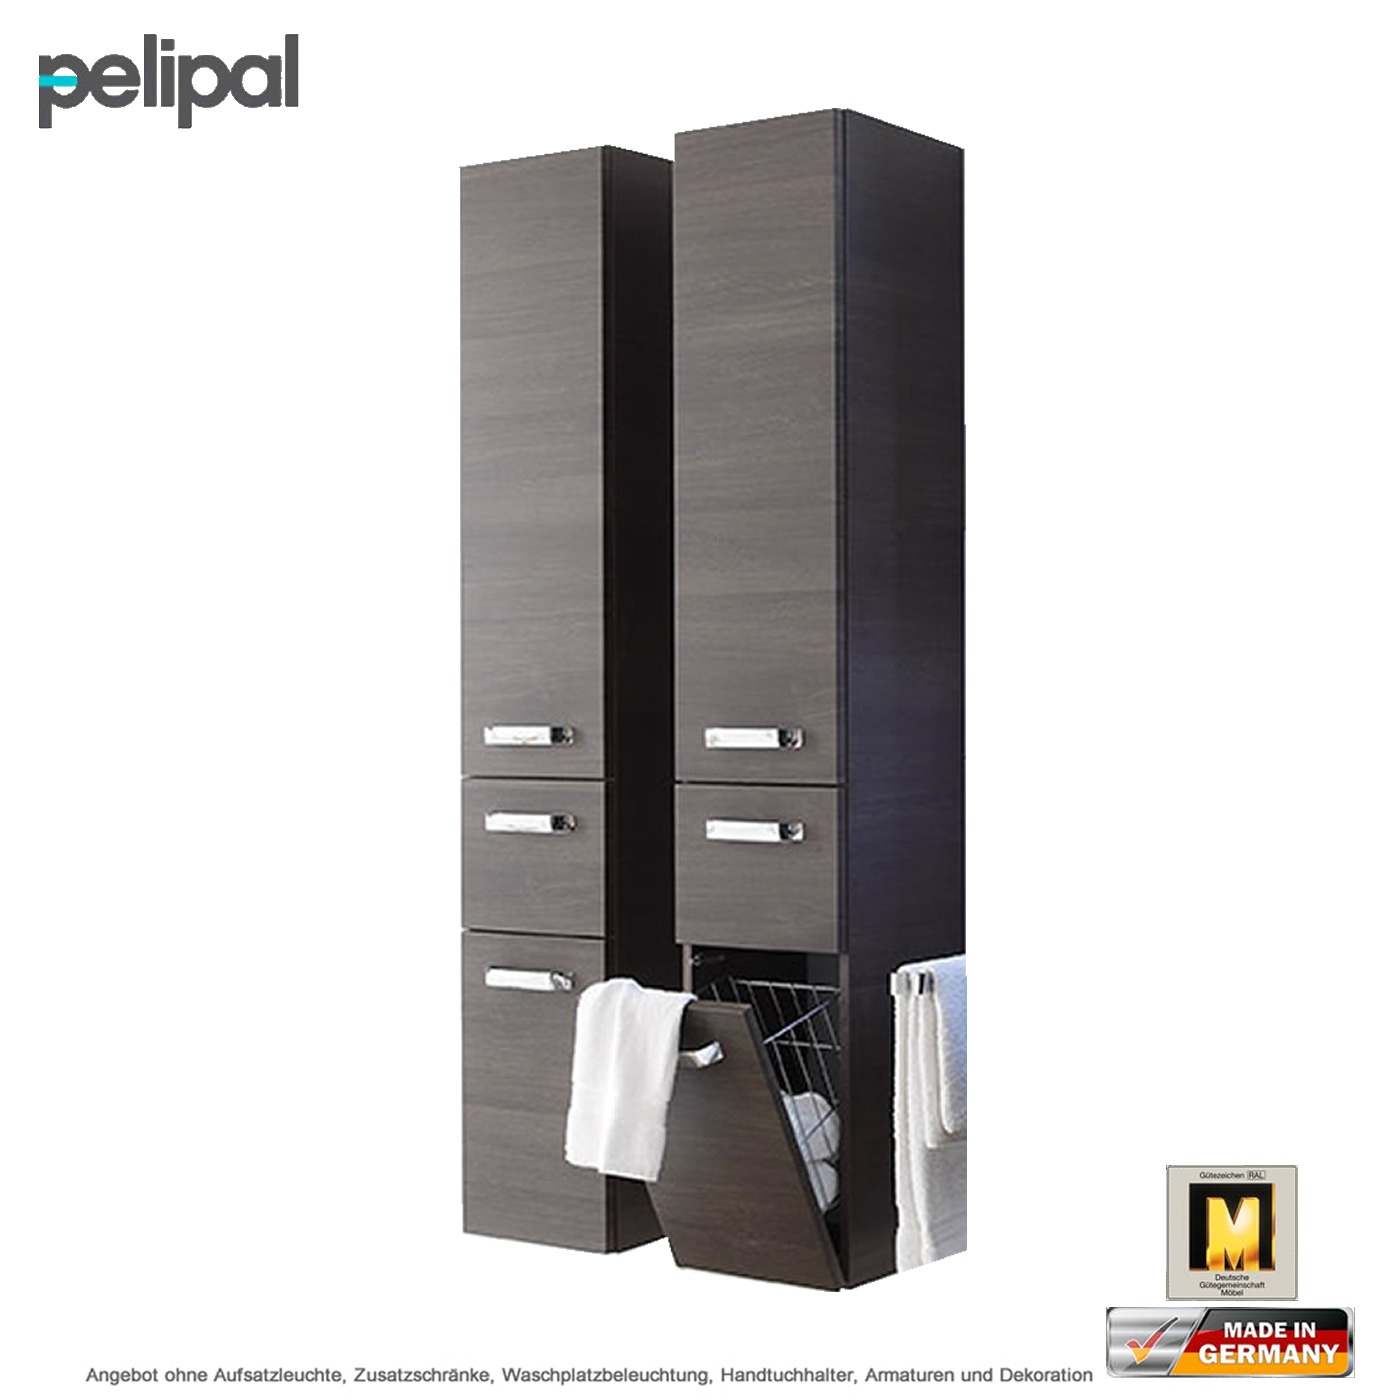 pelipal solitaire 7025 hochschrank mit w schekippe 30 cm impulsbad. Black Bedroom Furniture Sets. Home Design Ideas